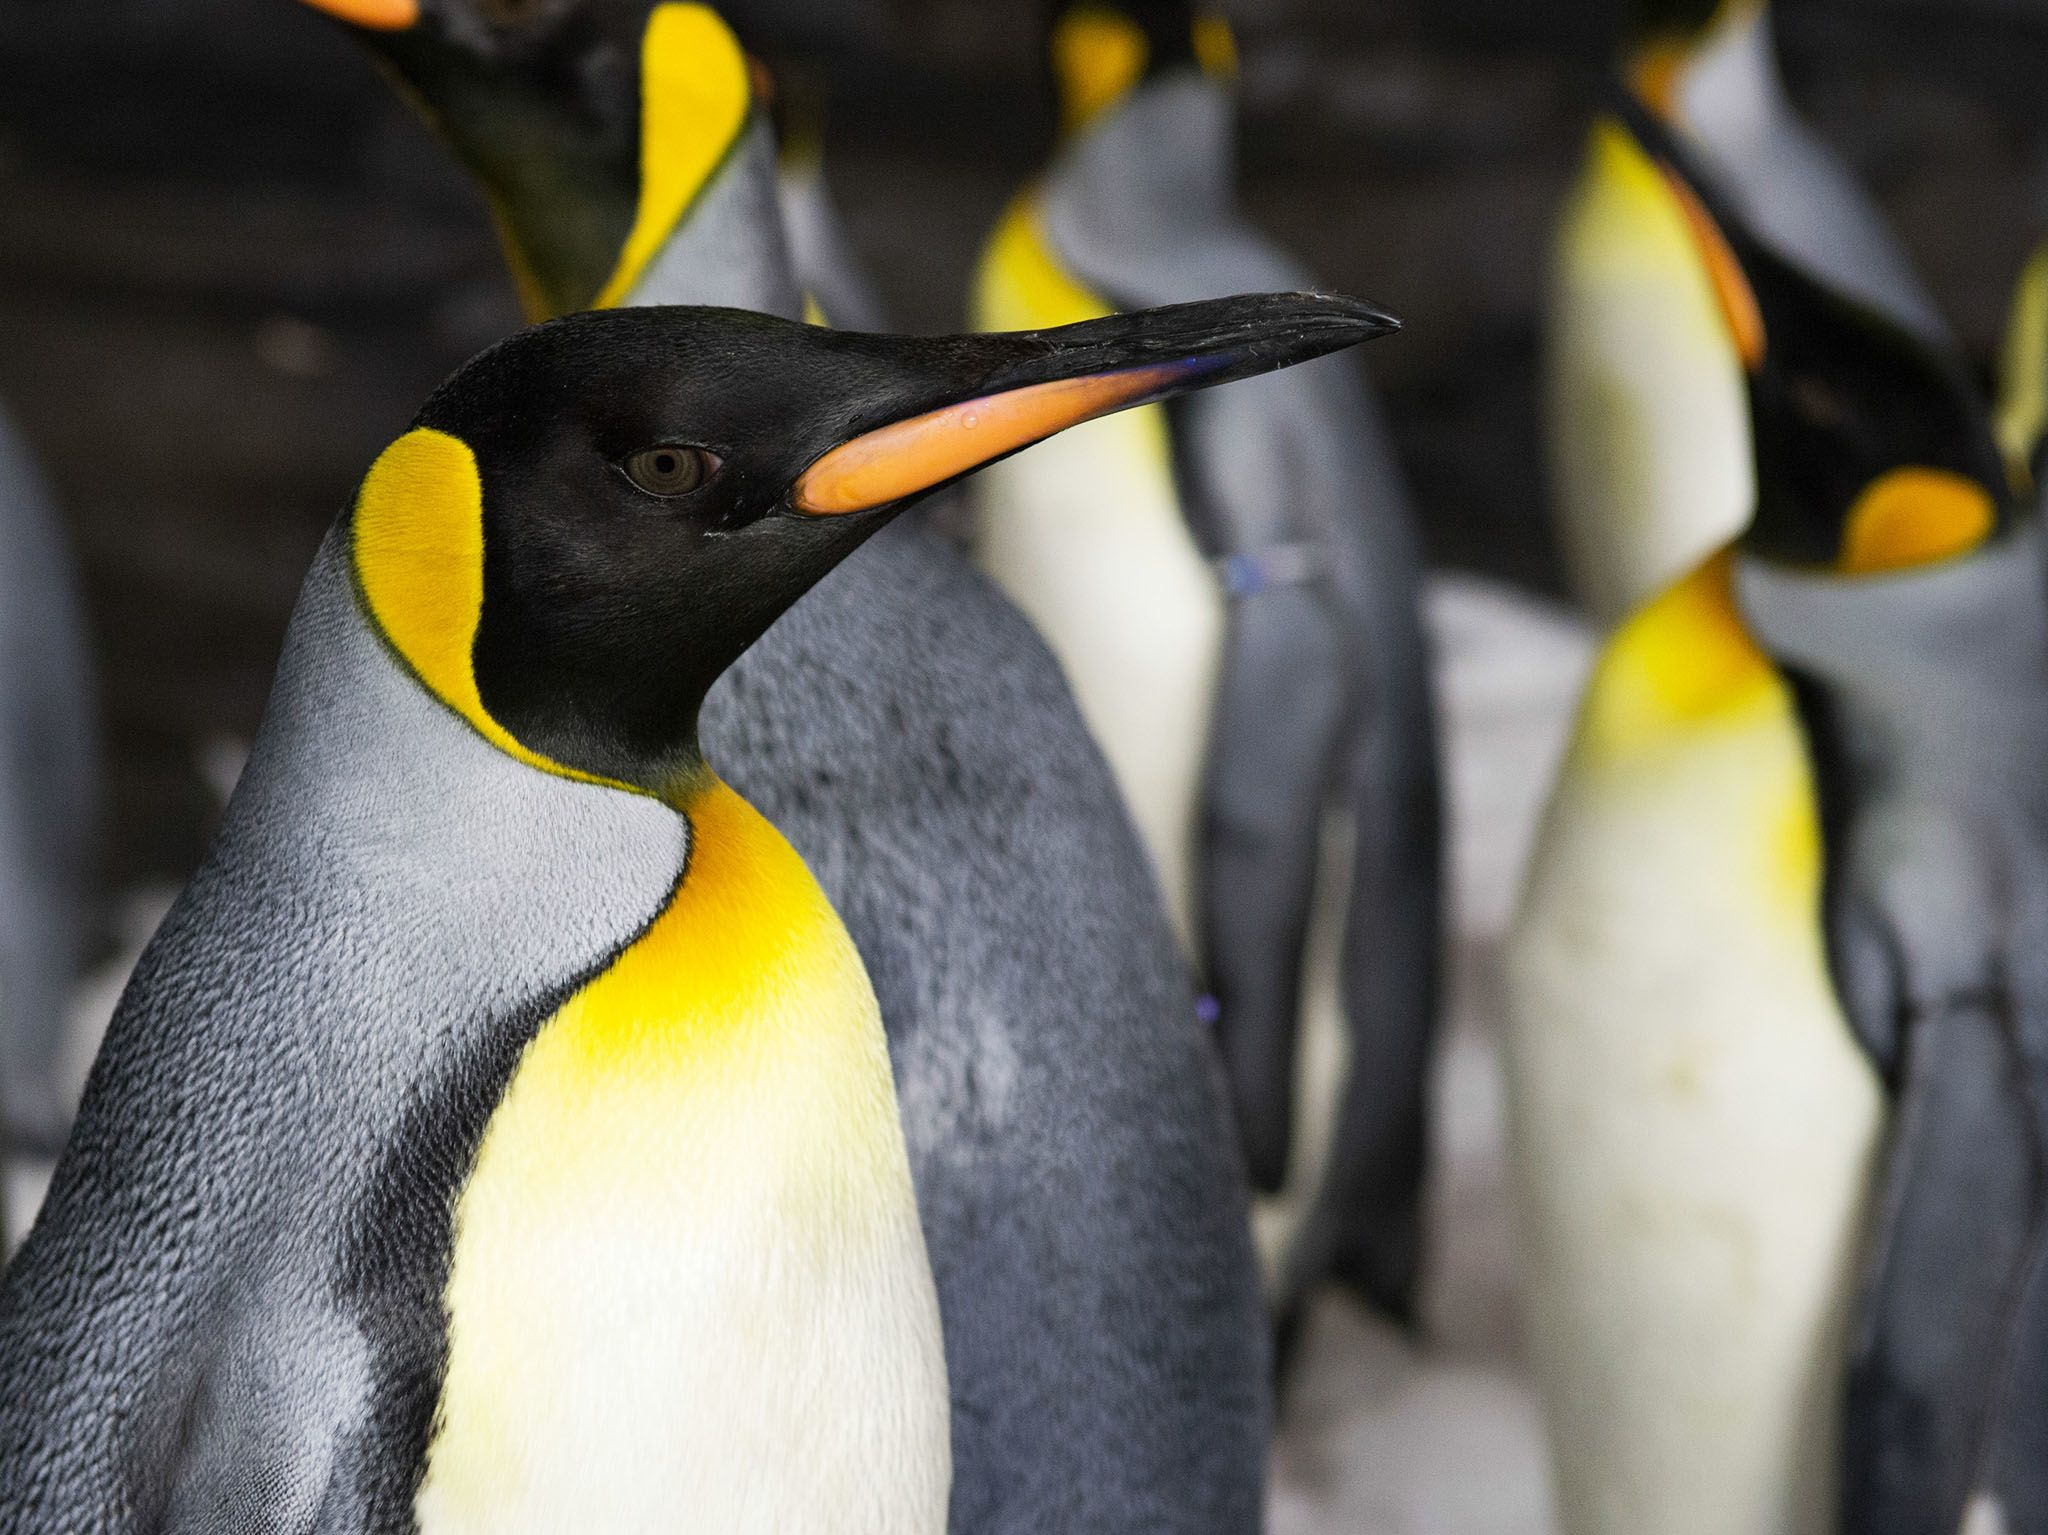 SeaWorld, Orlando, FL: Close up of  penguins in enclosure. This image is from Penguinpalooza. [Photo of the day - 四月 2017]